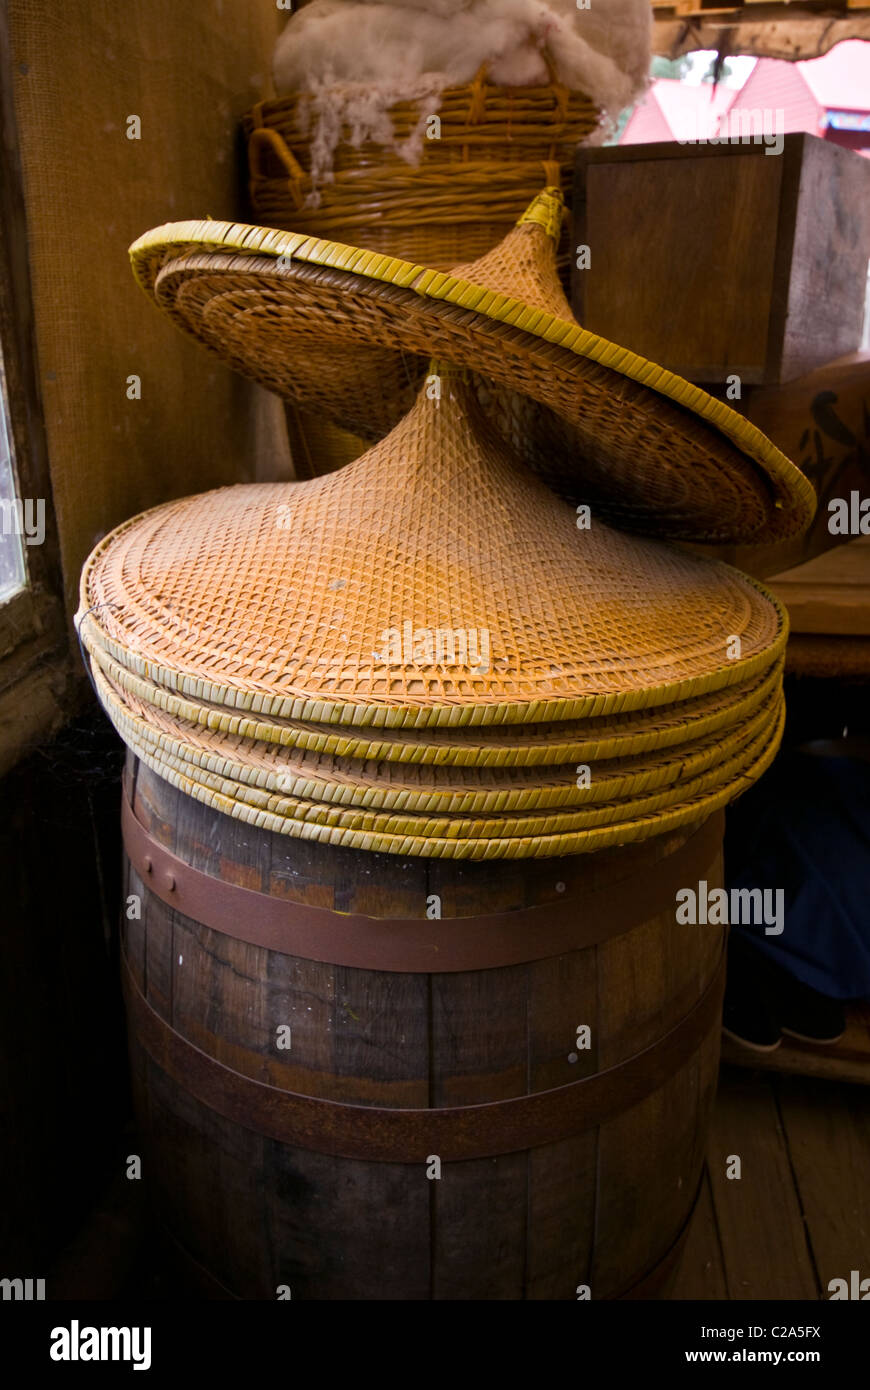 Wide-brimmed woven wicker sun hats on sale for Chinese gold miners. - Stock Image